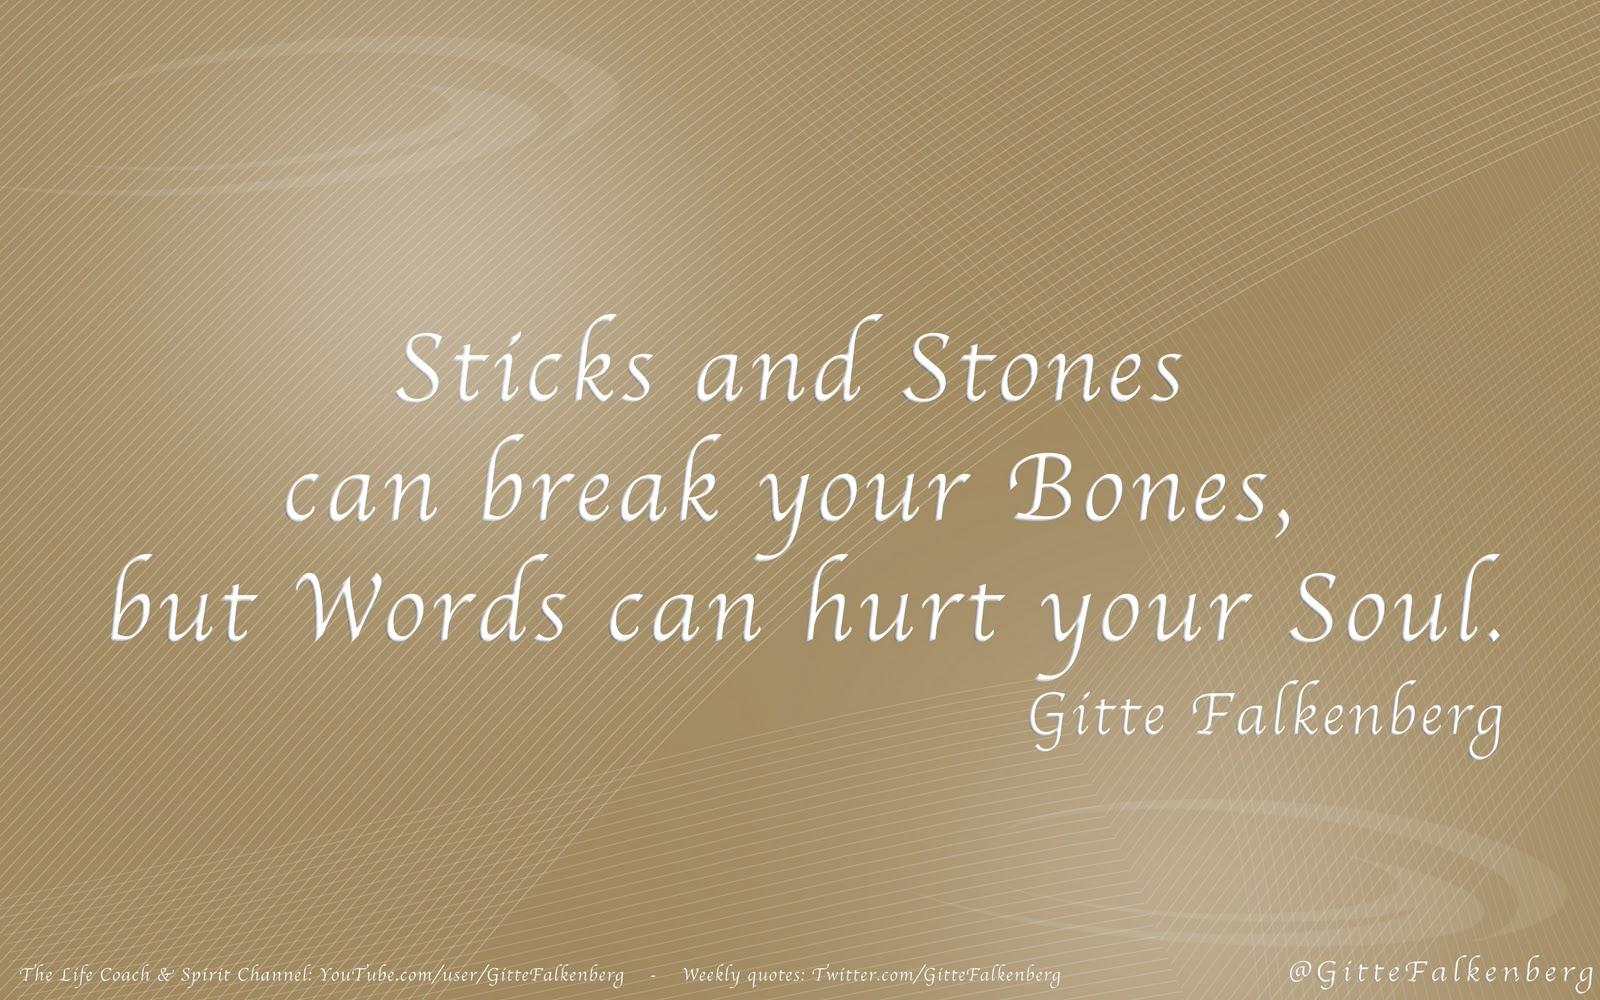 sticks and stones make break my bones, but words will never hurt me essay Sticks and stones may break my bones, (but words can never hurt me) definition: said in order to show that people cannot be hurt by unpleasant things that are said to them learn more.